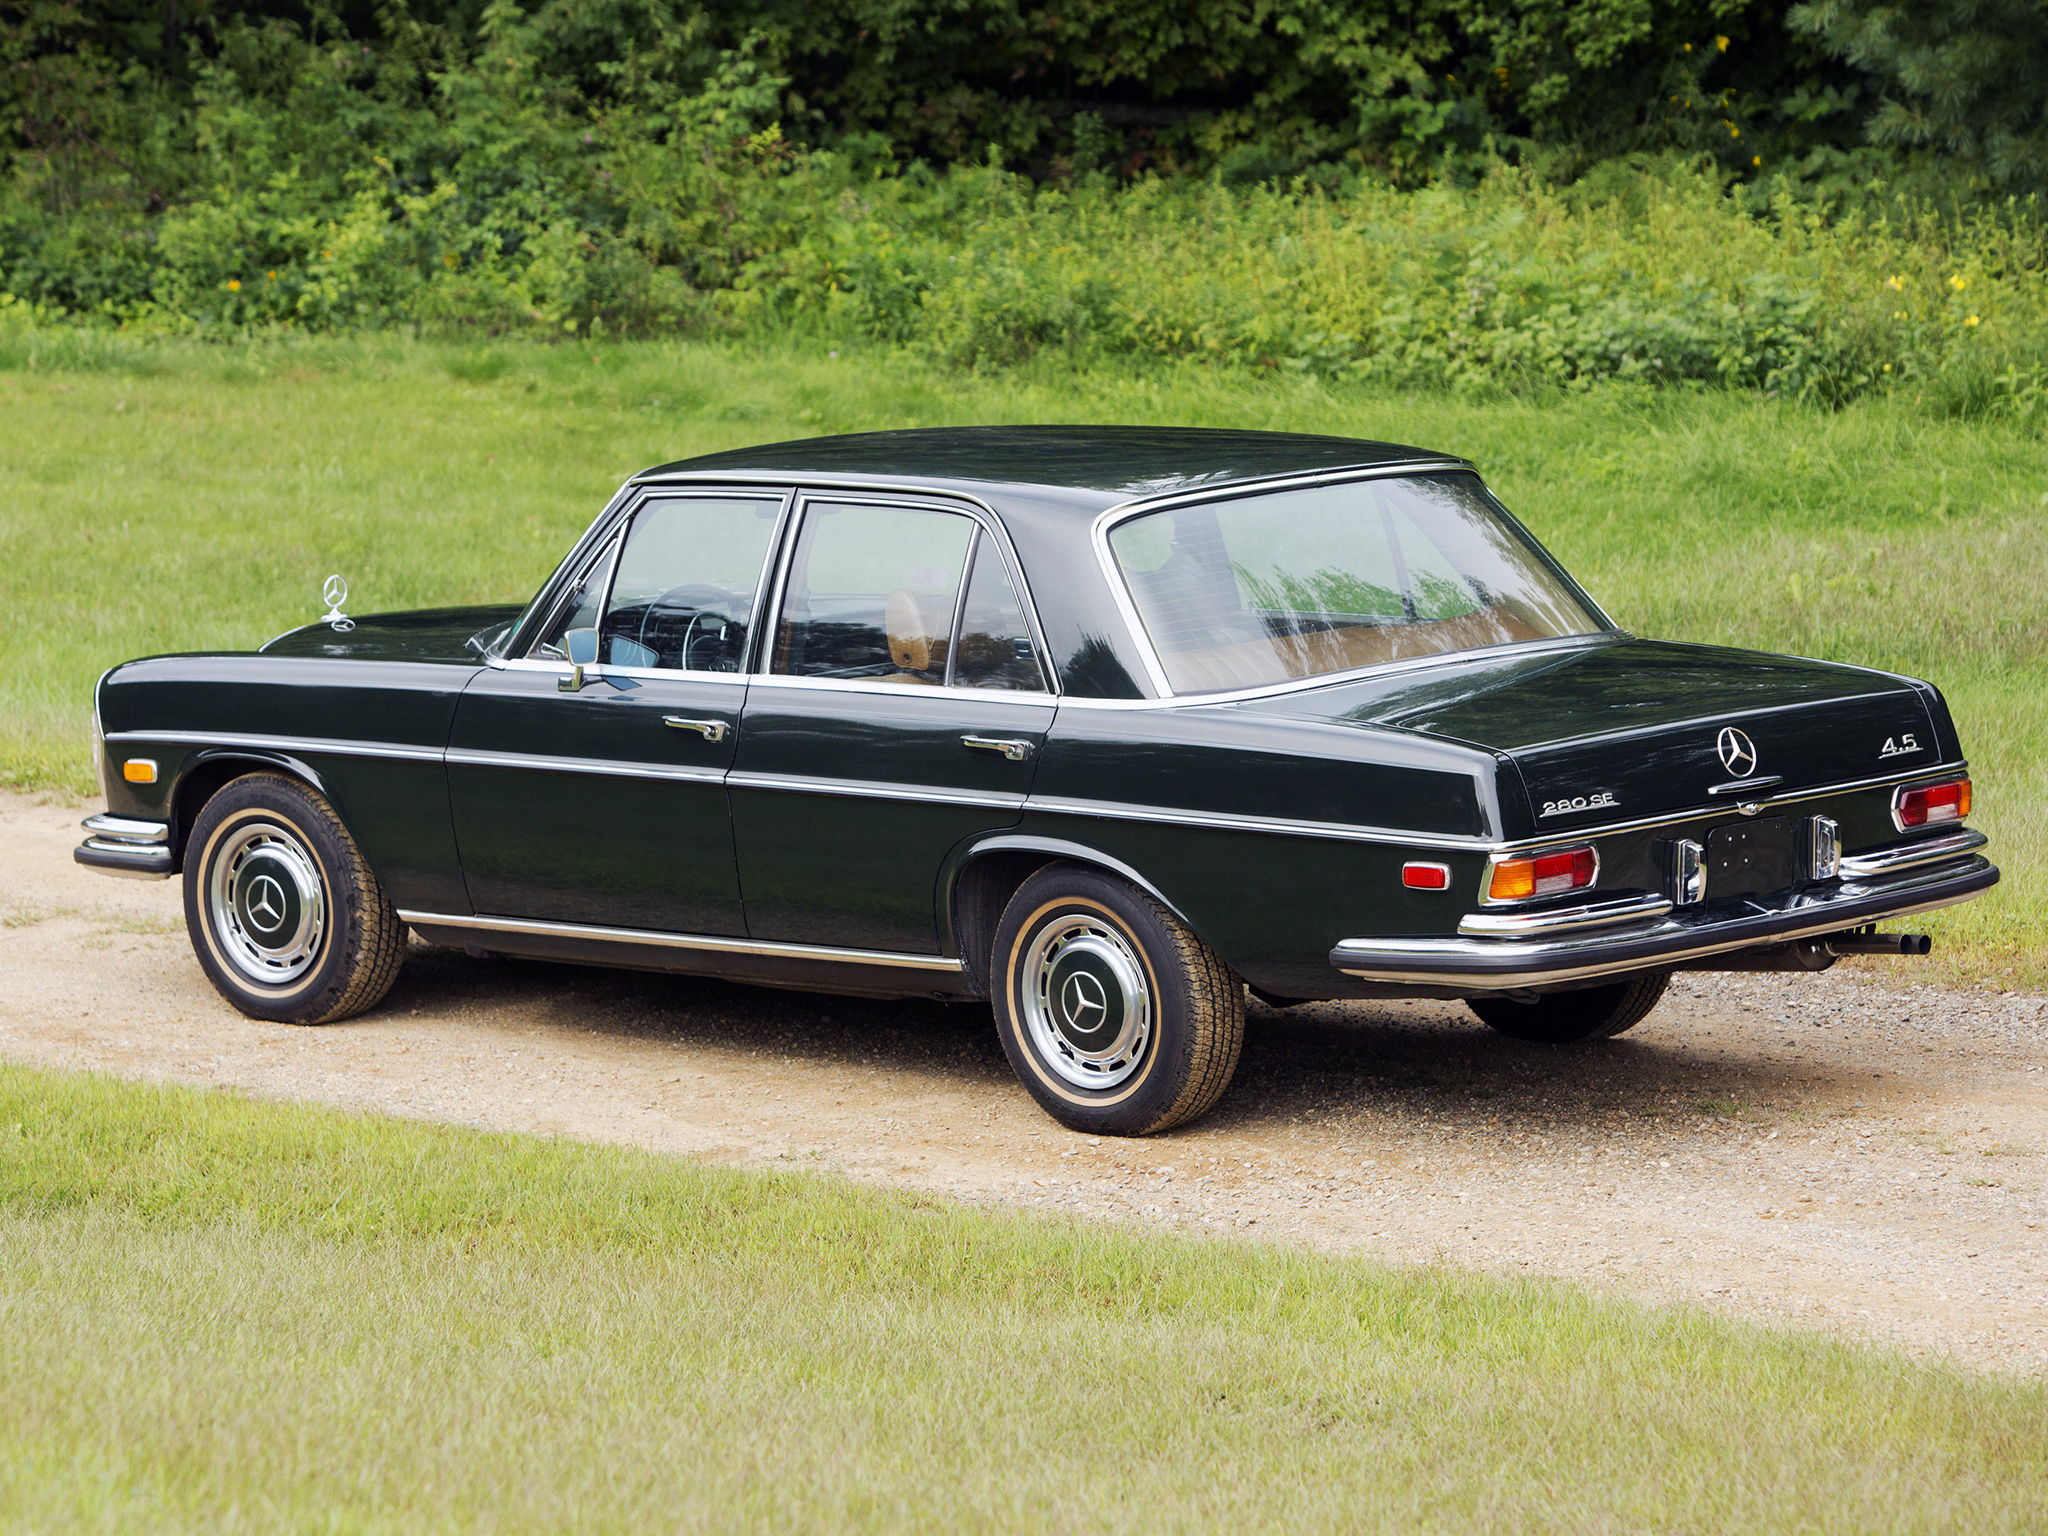 Mercedes benz 280 se w108 vs bmw 2800 e3 test drive drive for Mercedes benz 108